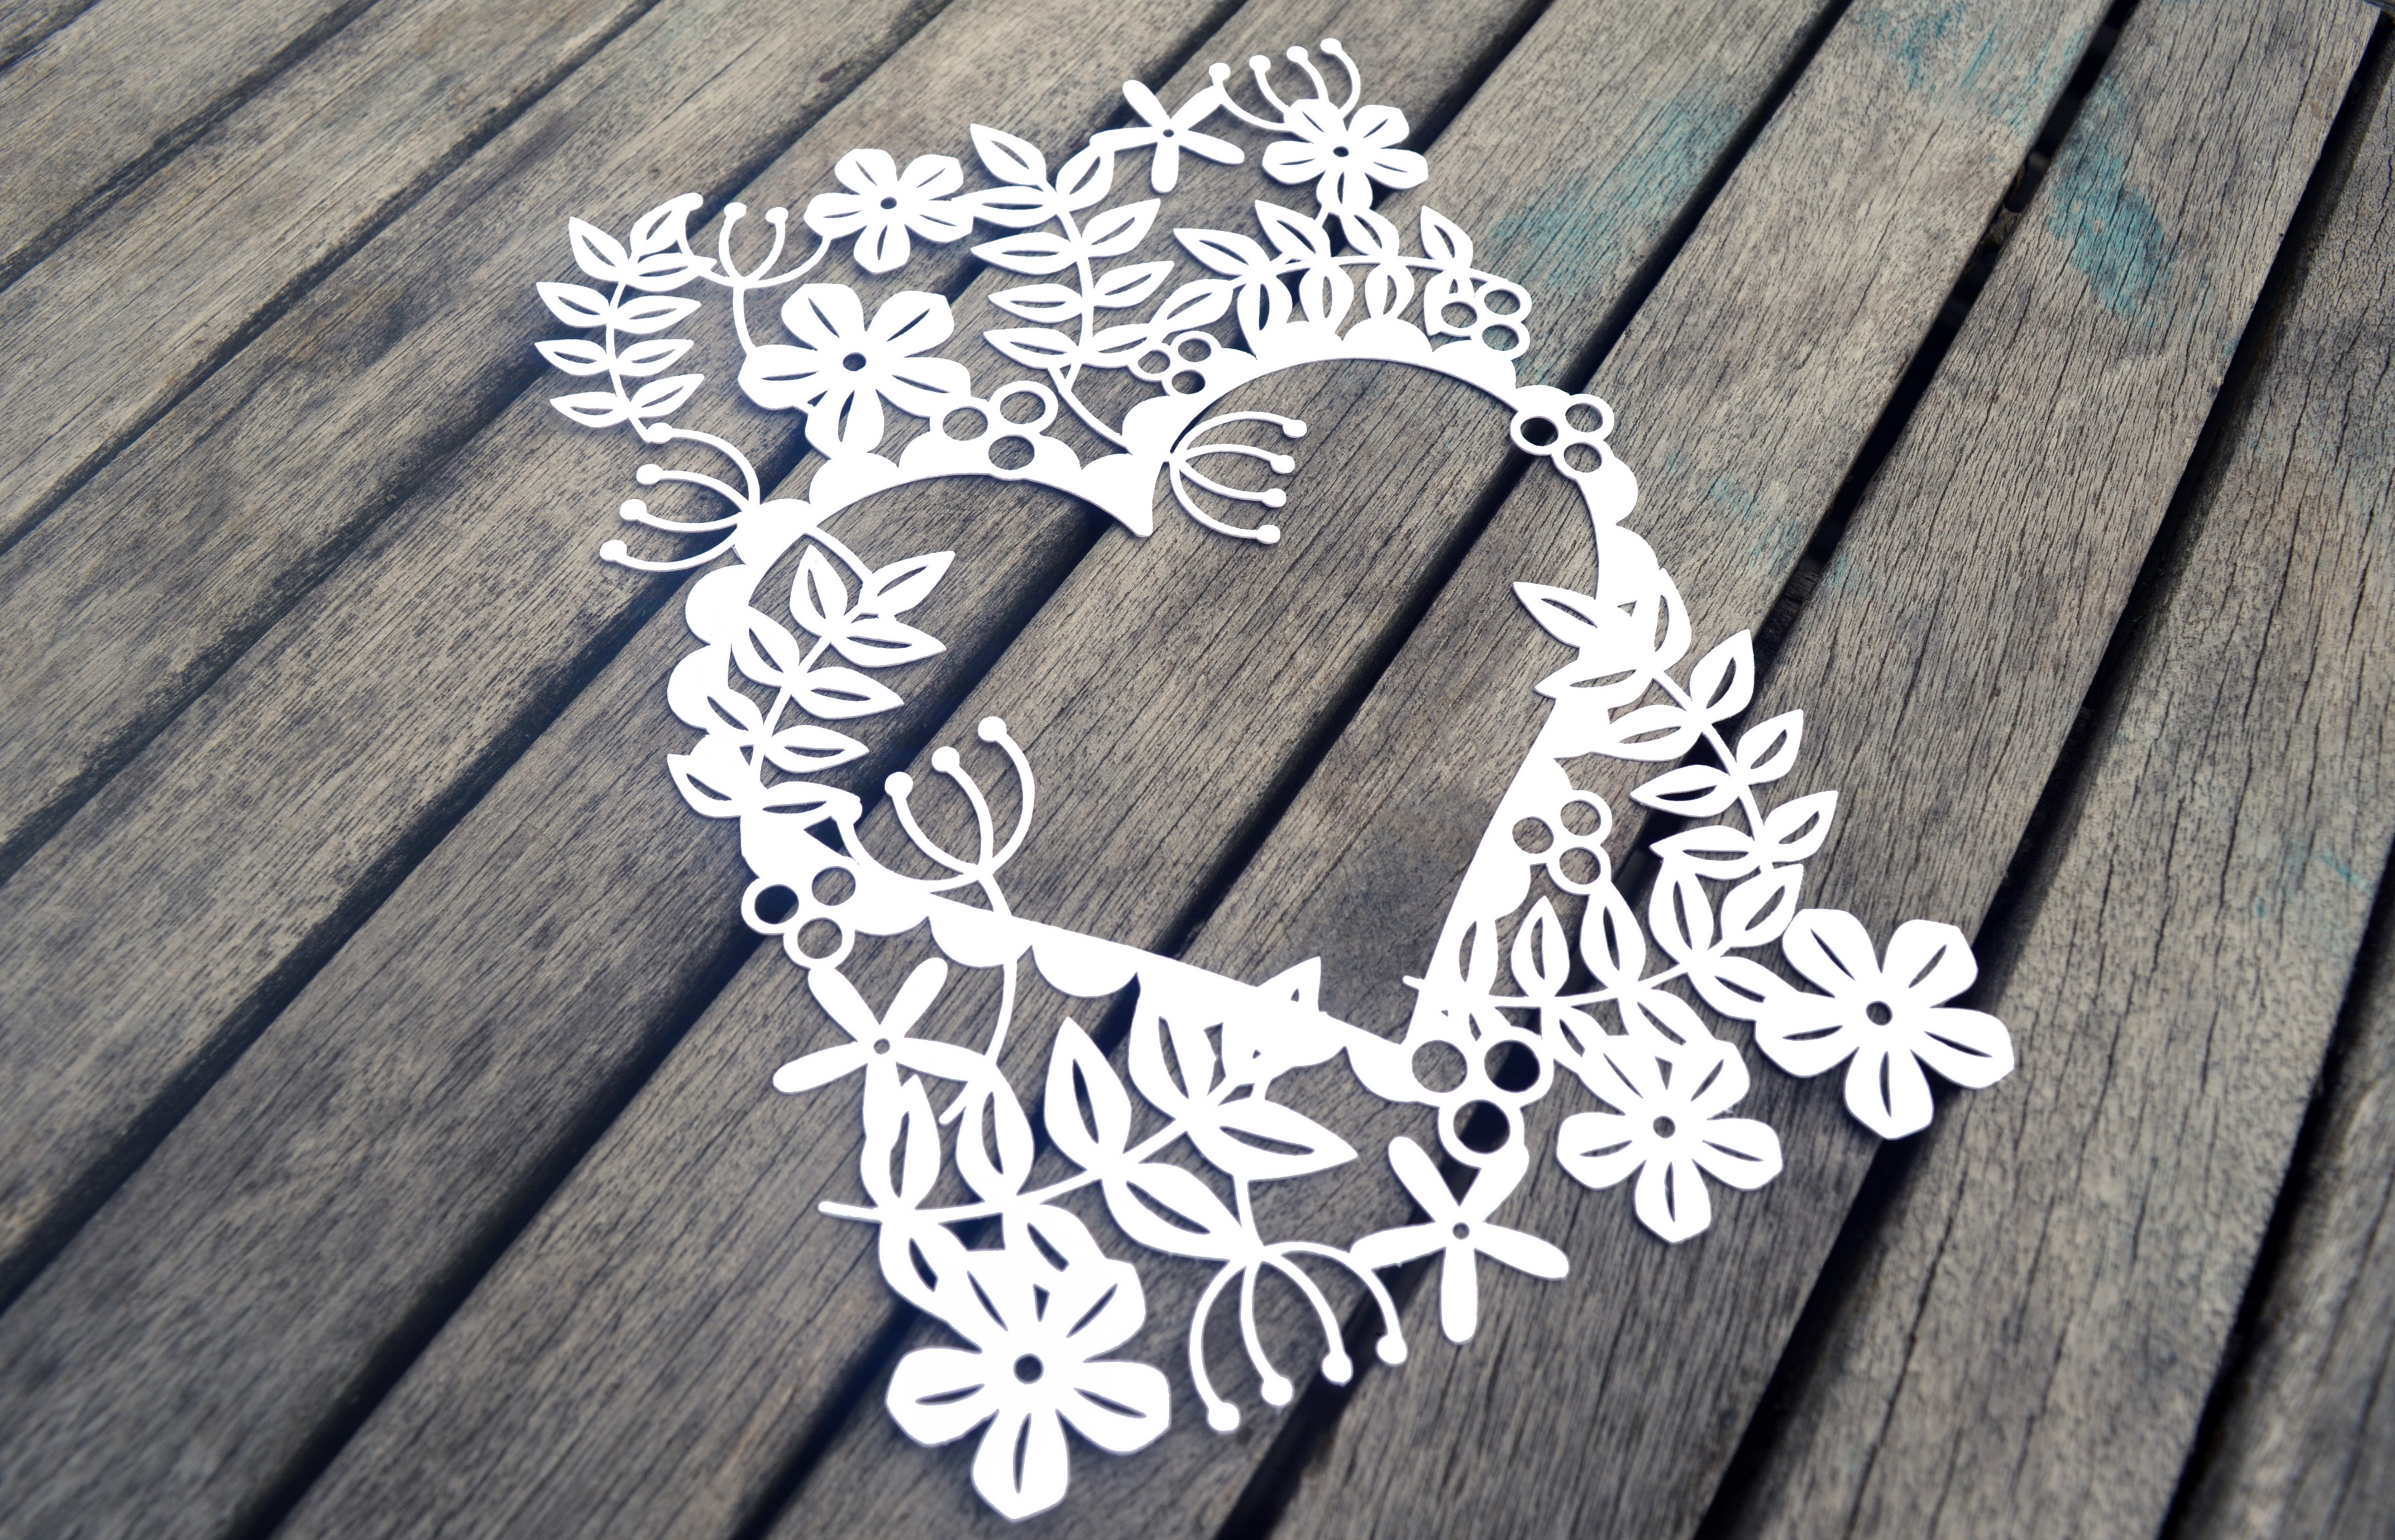 Heart Of Flowers Paper Cut SVG / DXF / EPS File example image 4